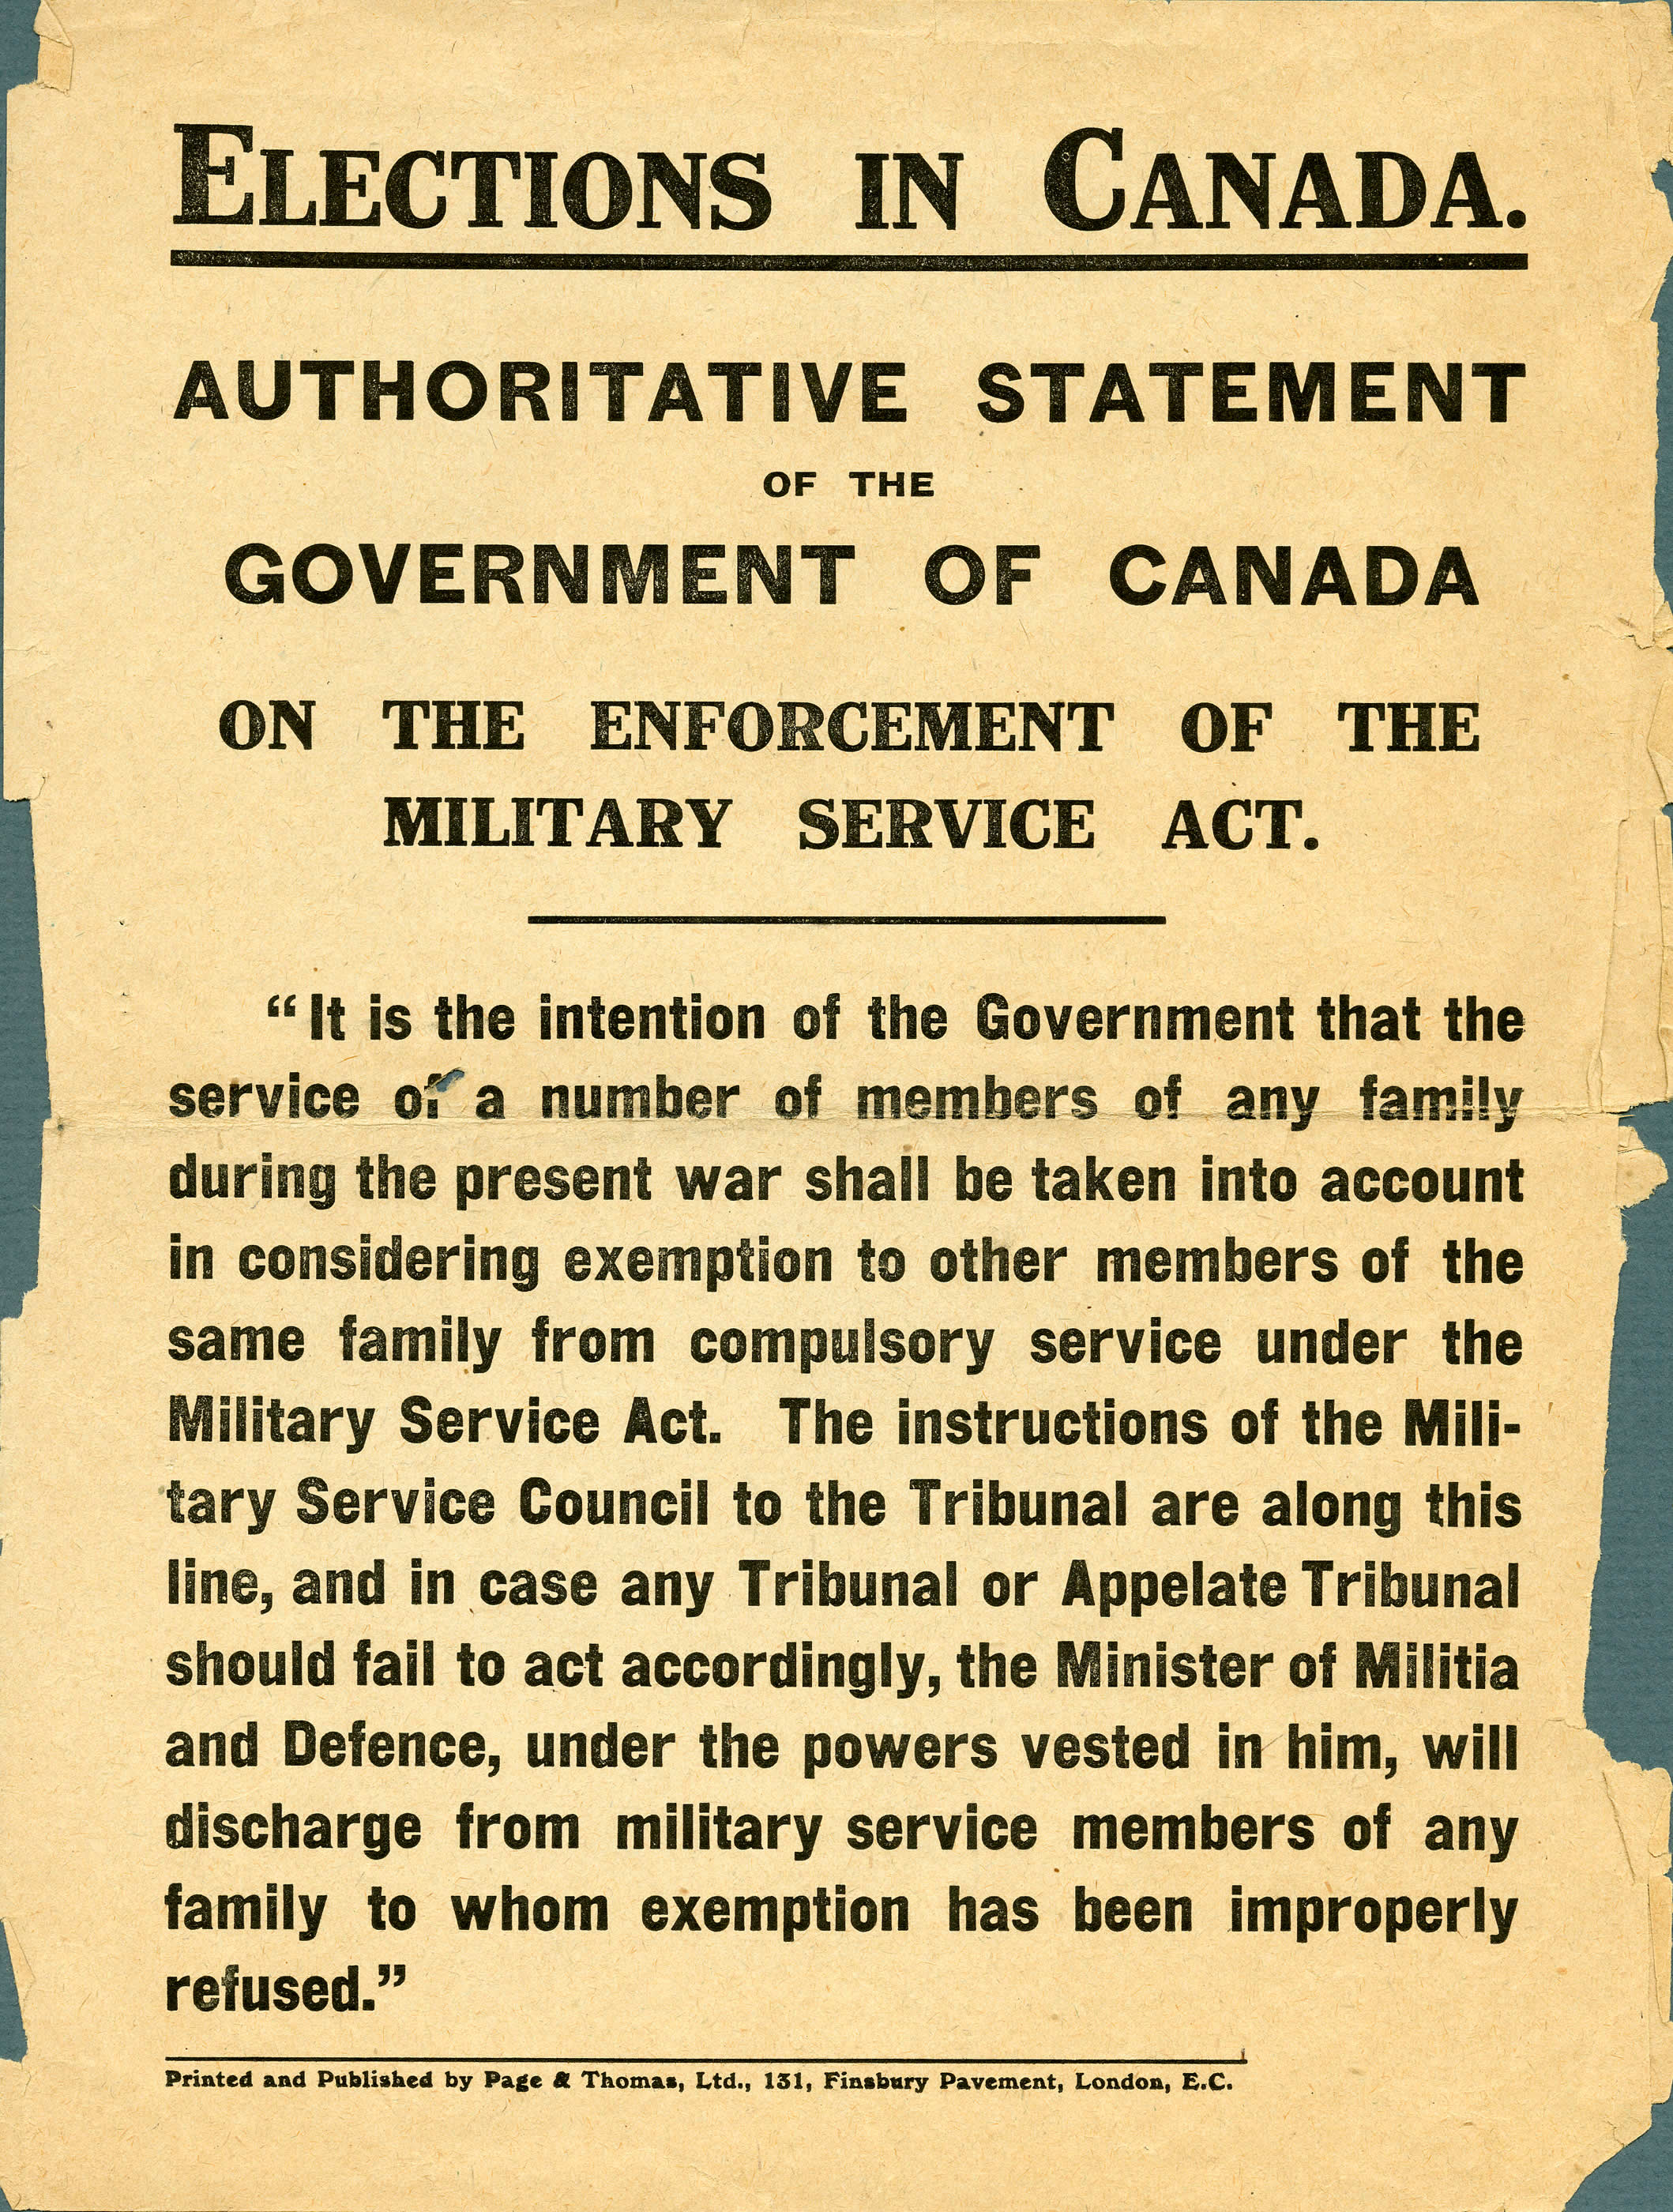 recruitment and conscription conscription and the enforcement of the military service act